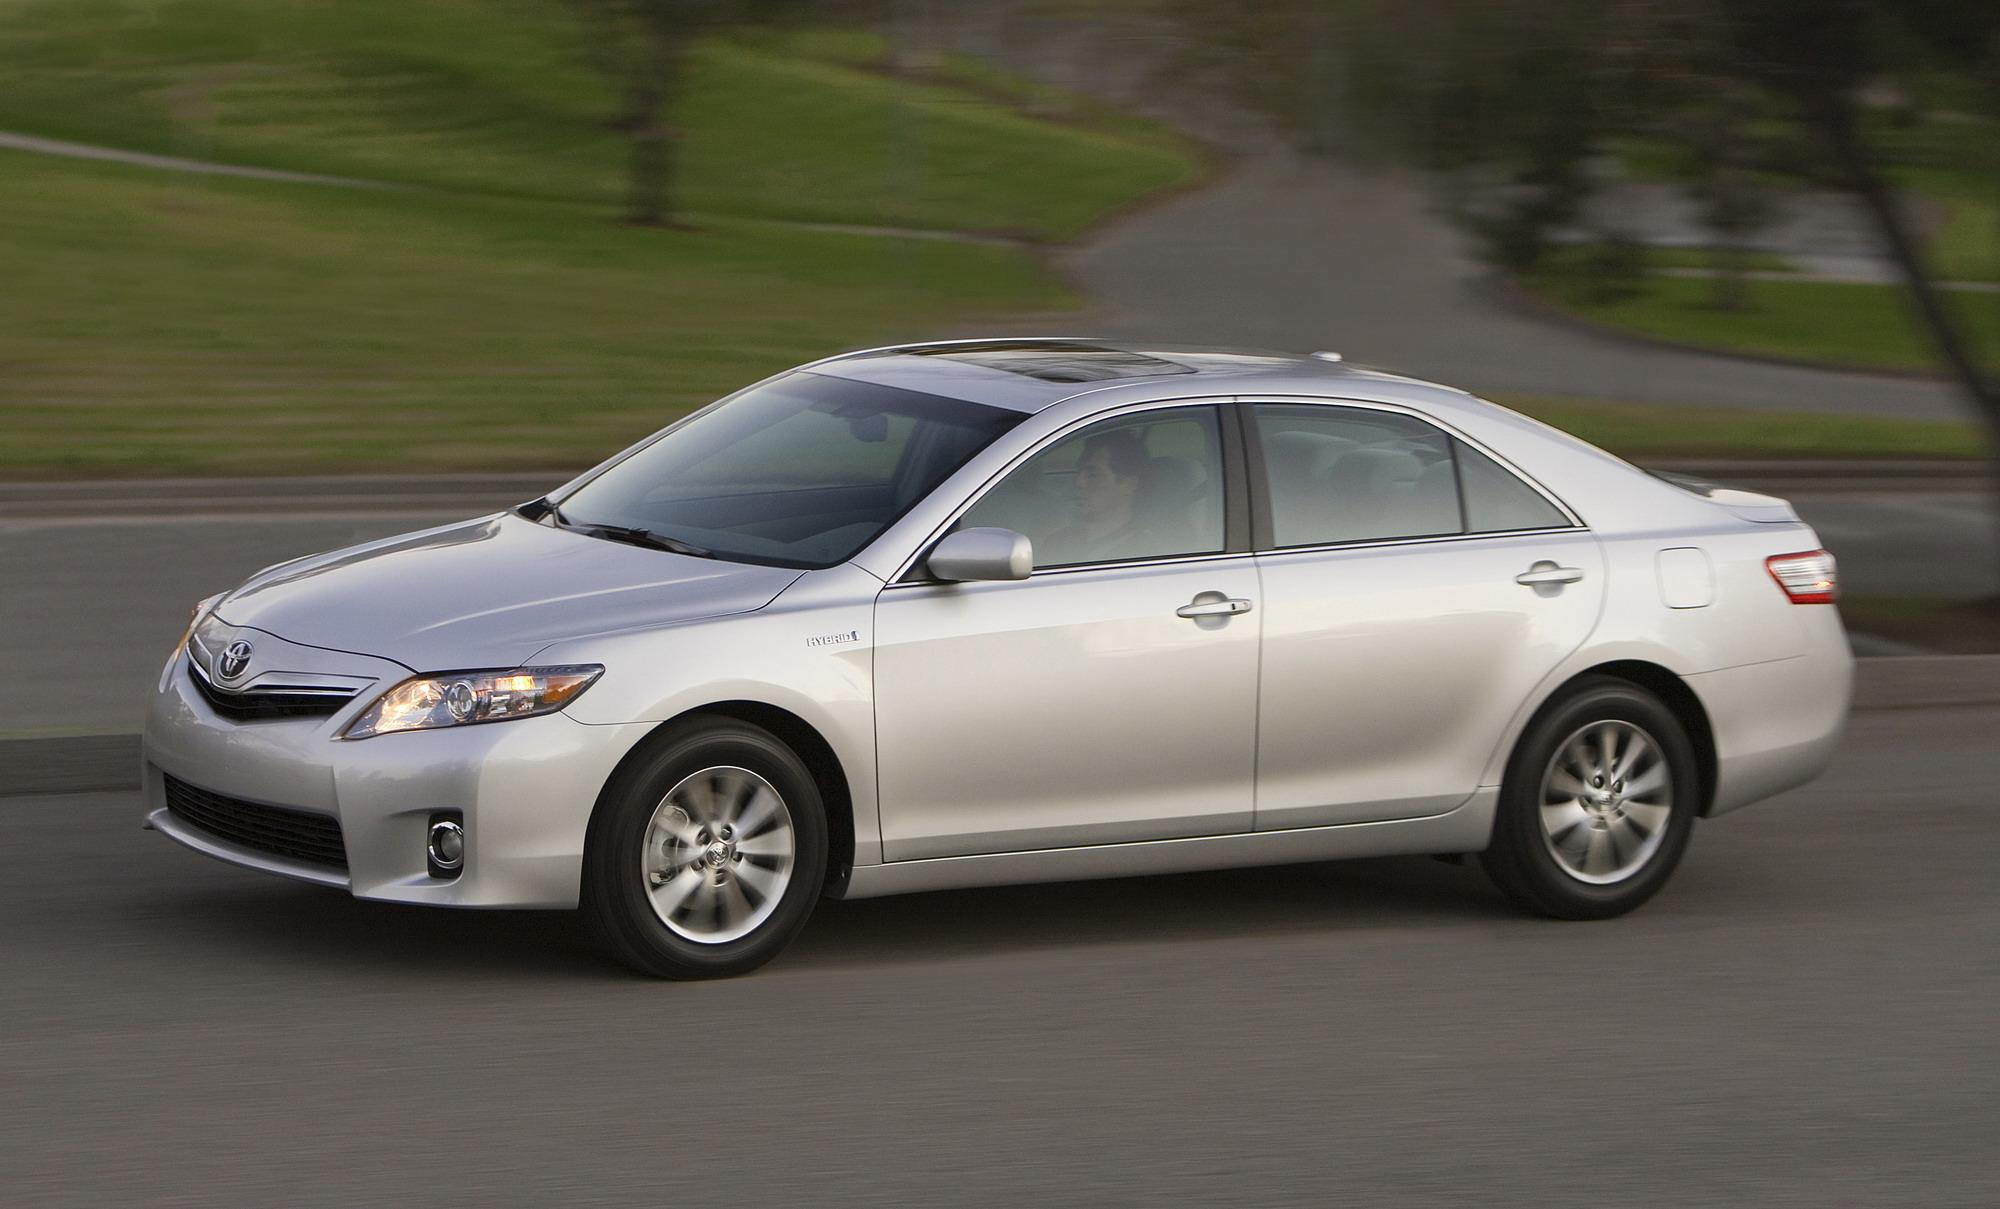 2010 toyota camry gallery 323196 top speed. Black Bedroom Furniture Sets. Home Design Ideas